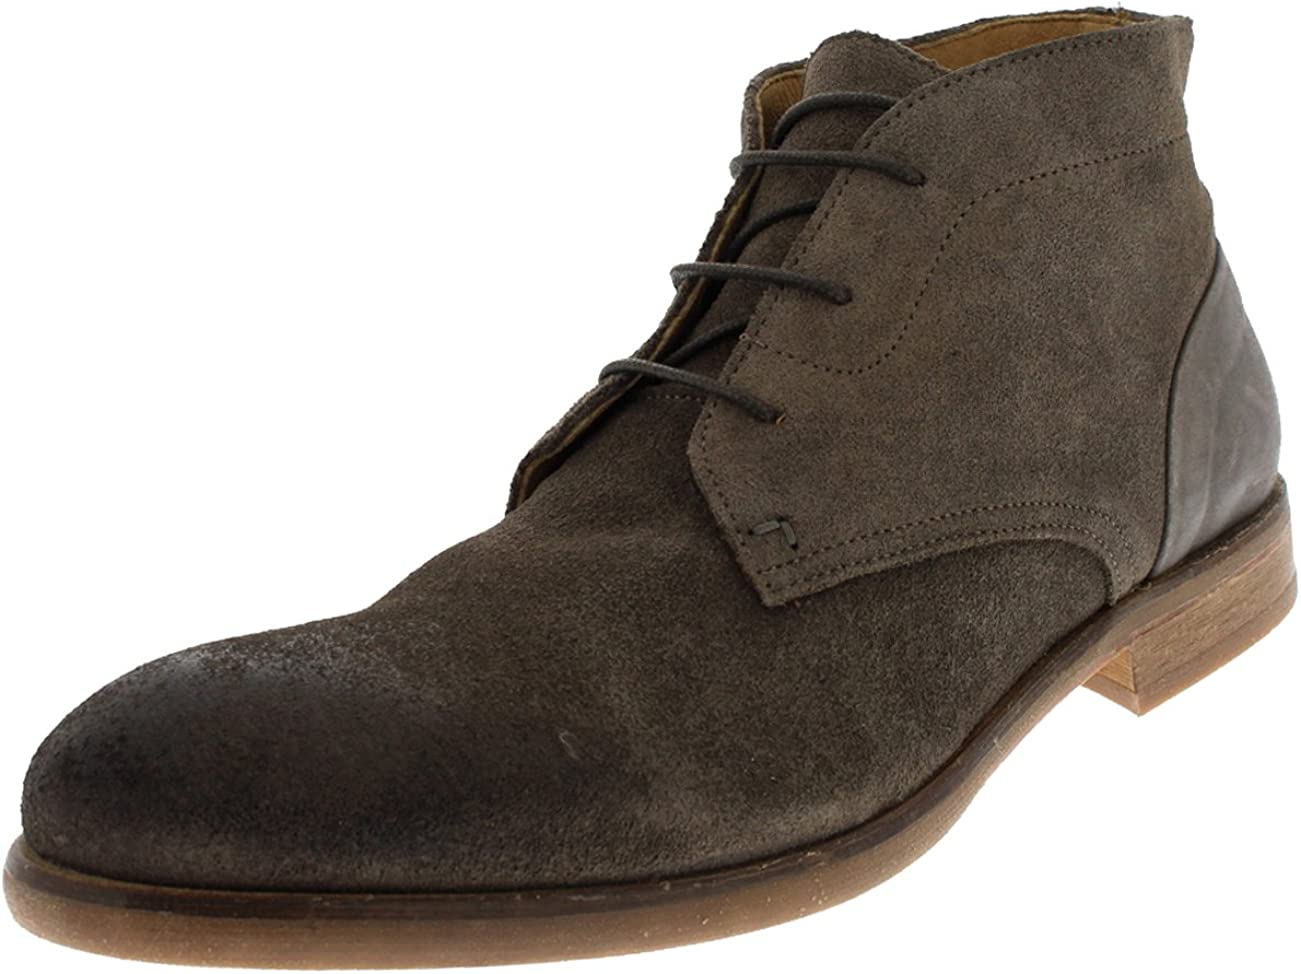 H by Hudson Mens Ryecroft Suede Lace Up